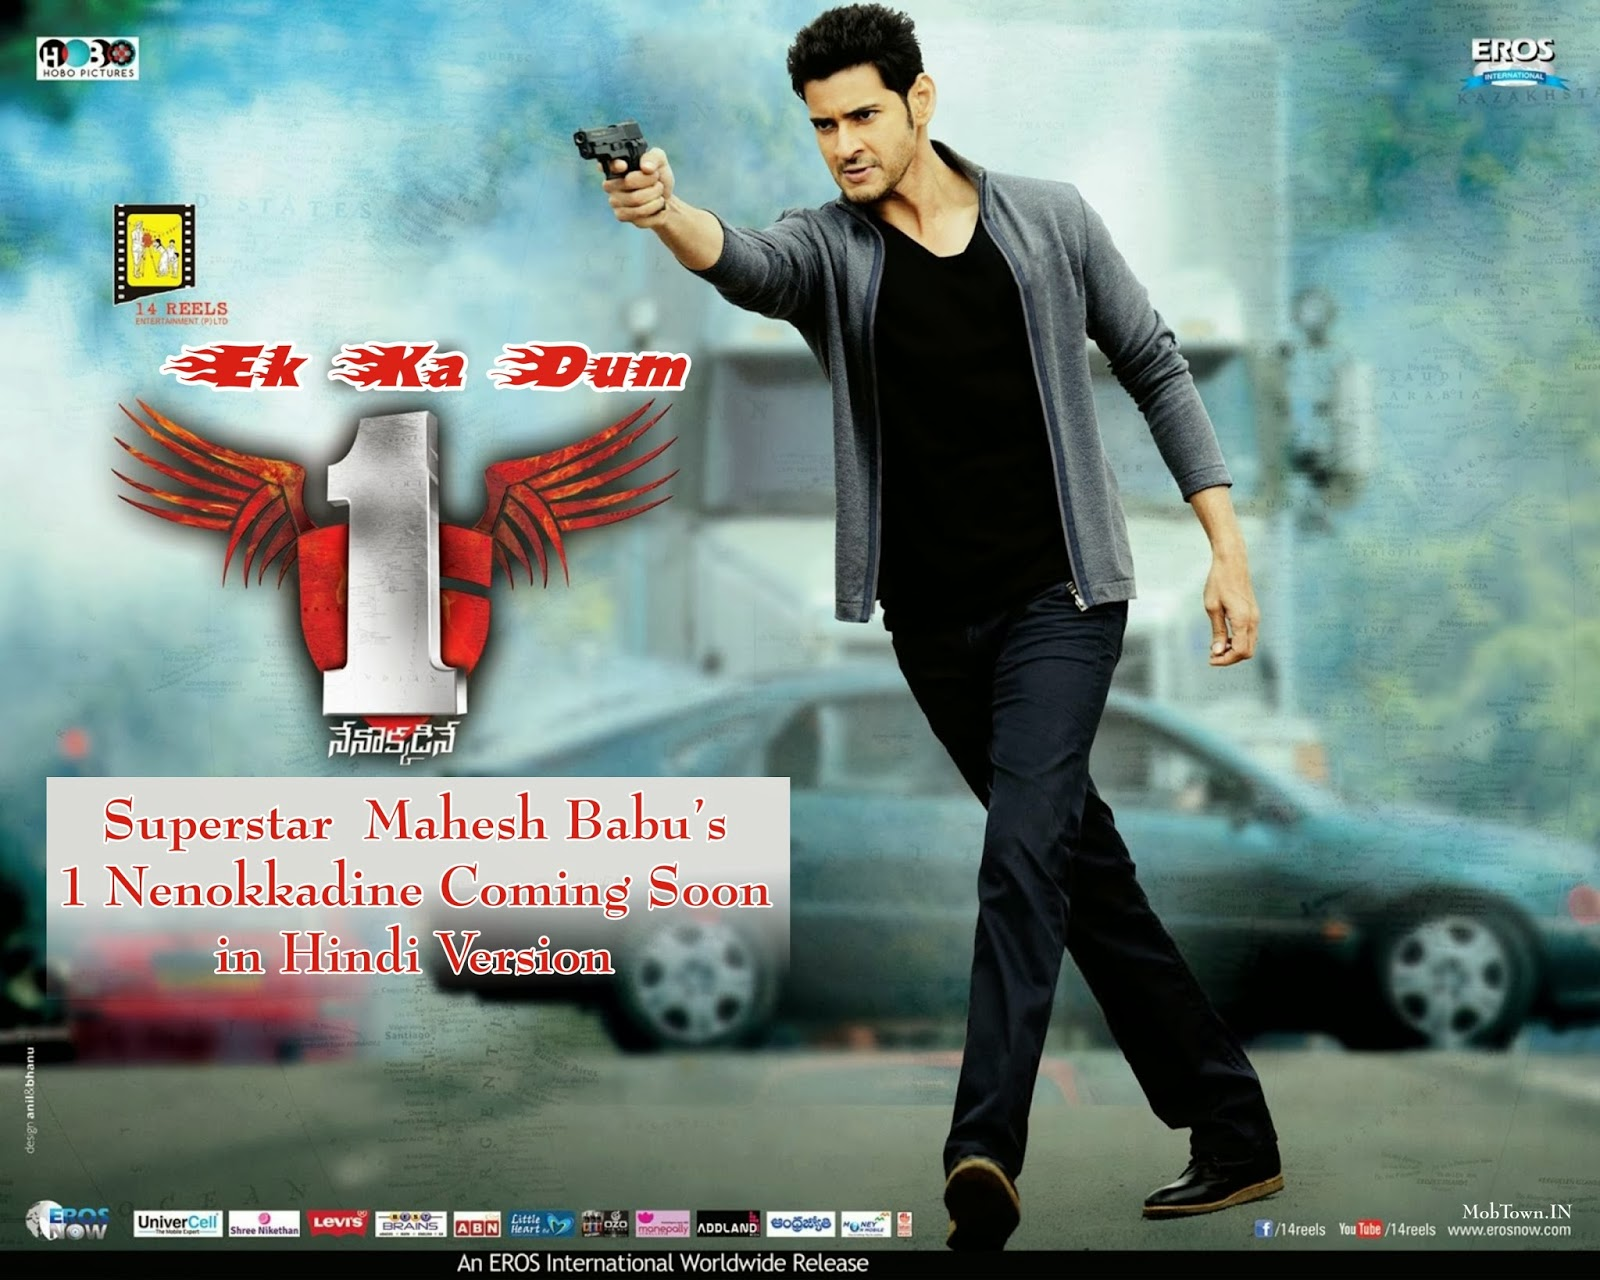 South Indian Movies, Free Tollywood Movies, Online Hindi Dubbed Movies